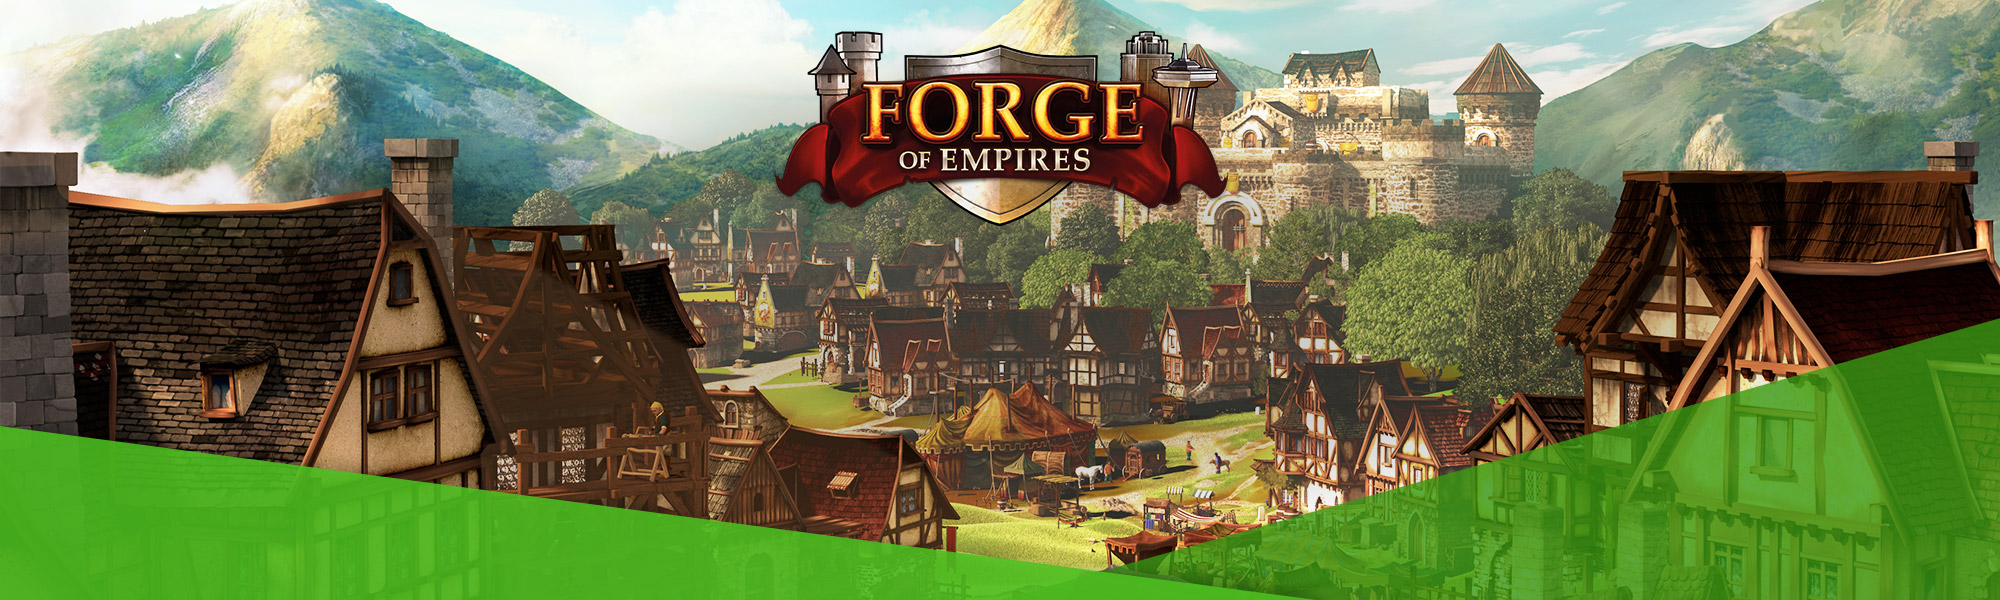 Forge of Empires - Strategisch stedenbouwspel